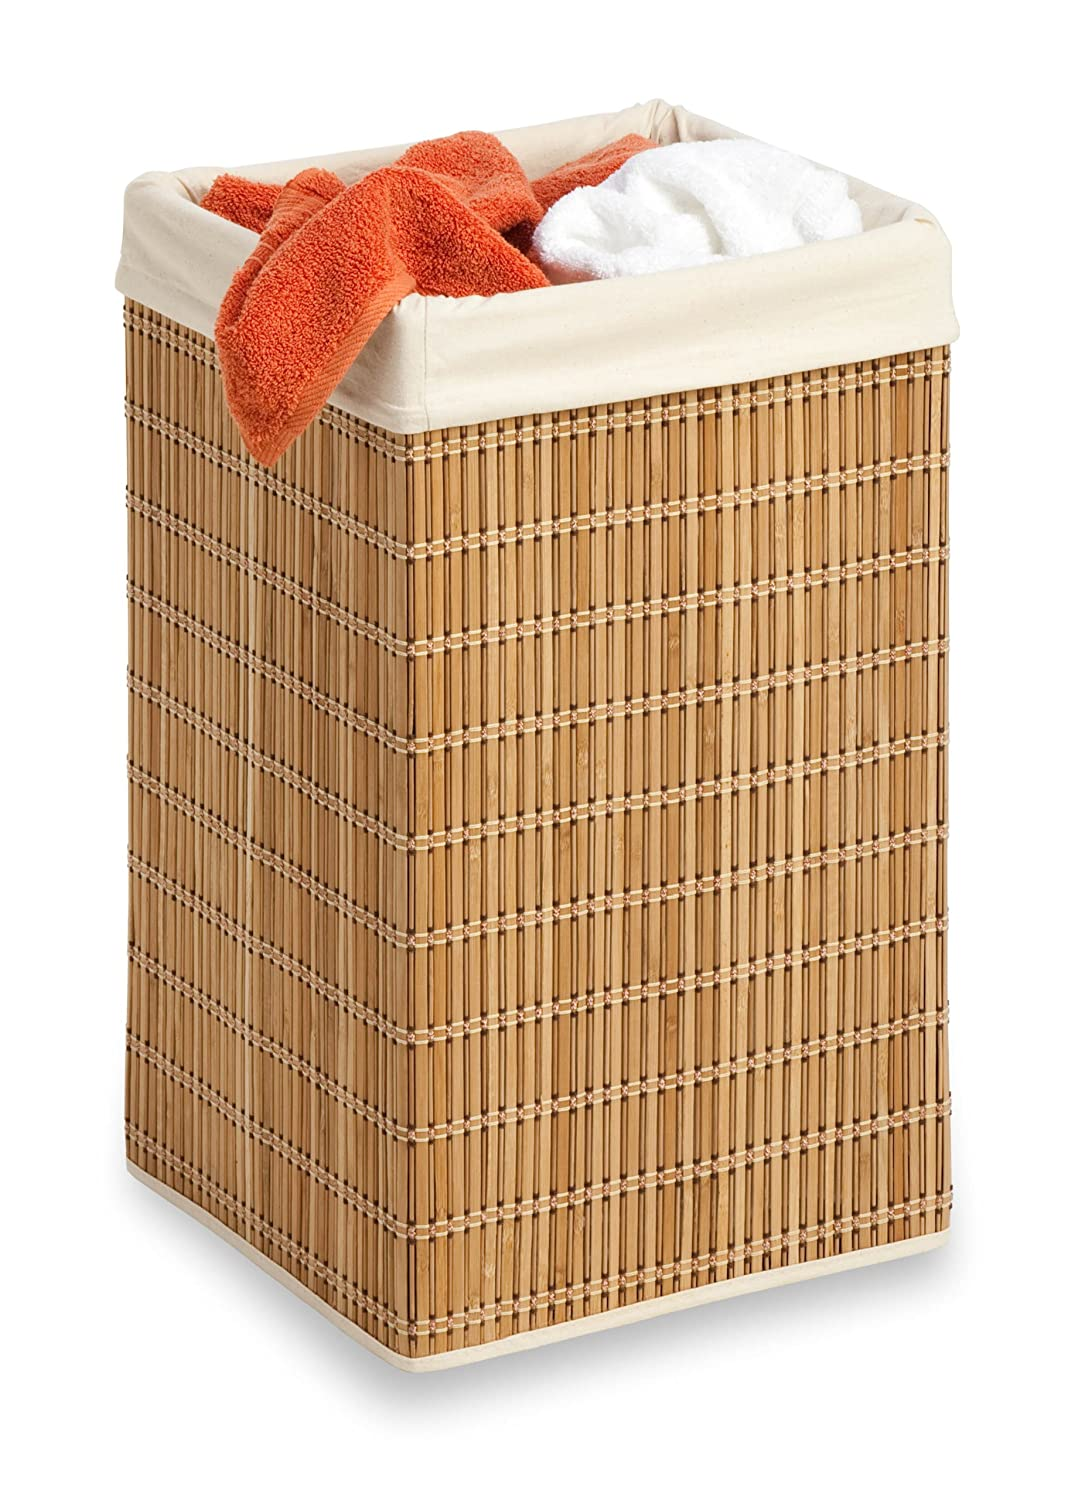 Designer Clothes Hampers Honey Can Do Hmp 01620 Square Wicker Hamper Clothing